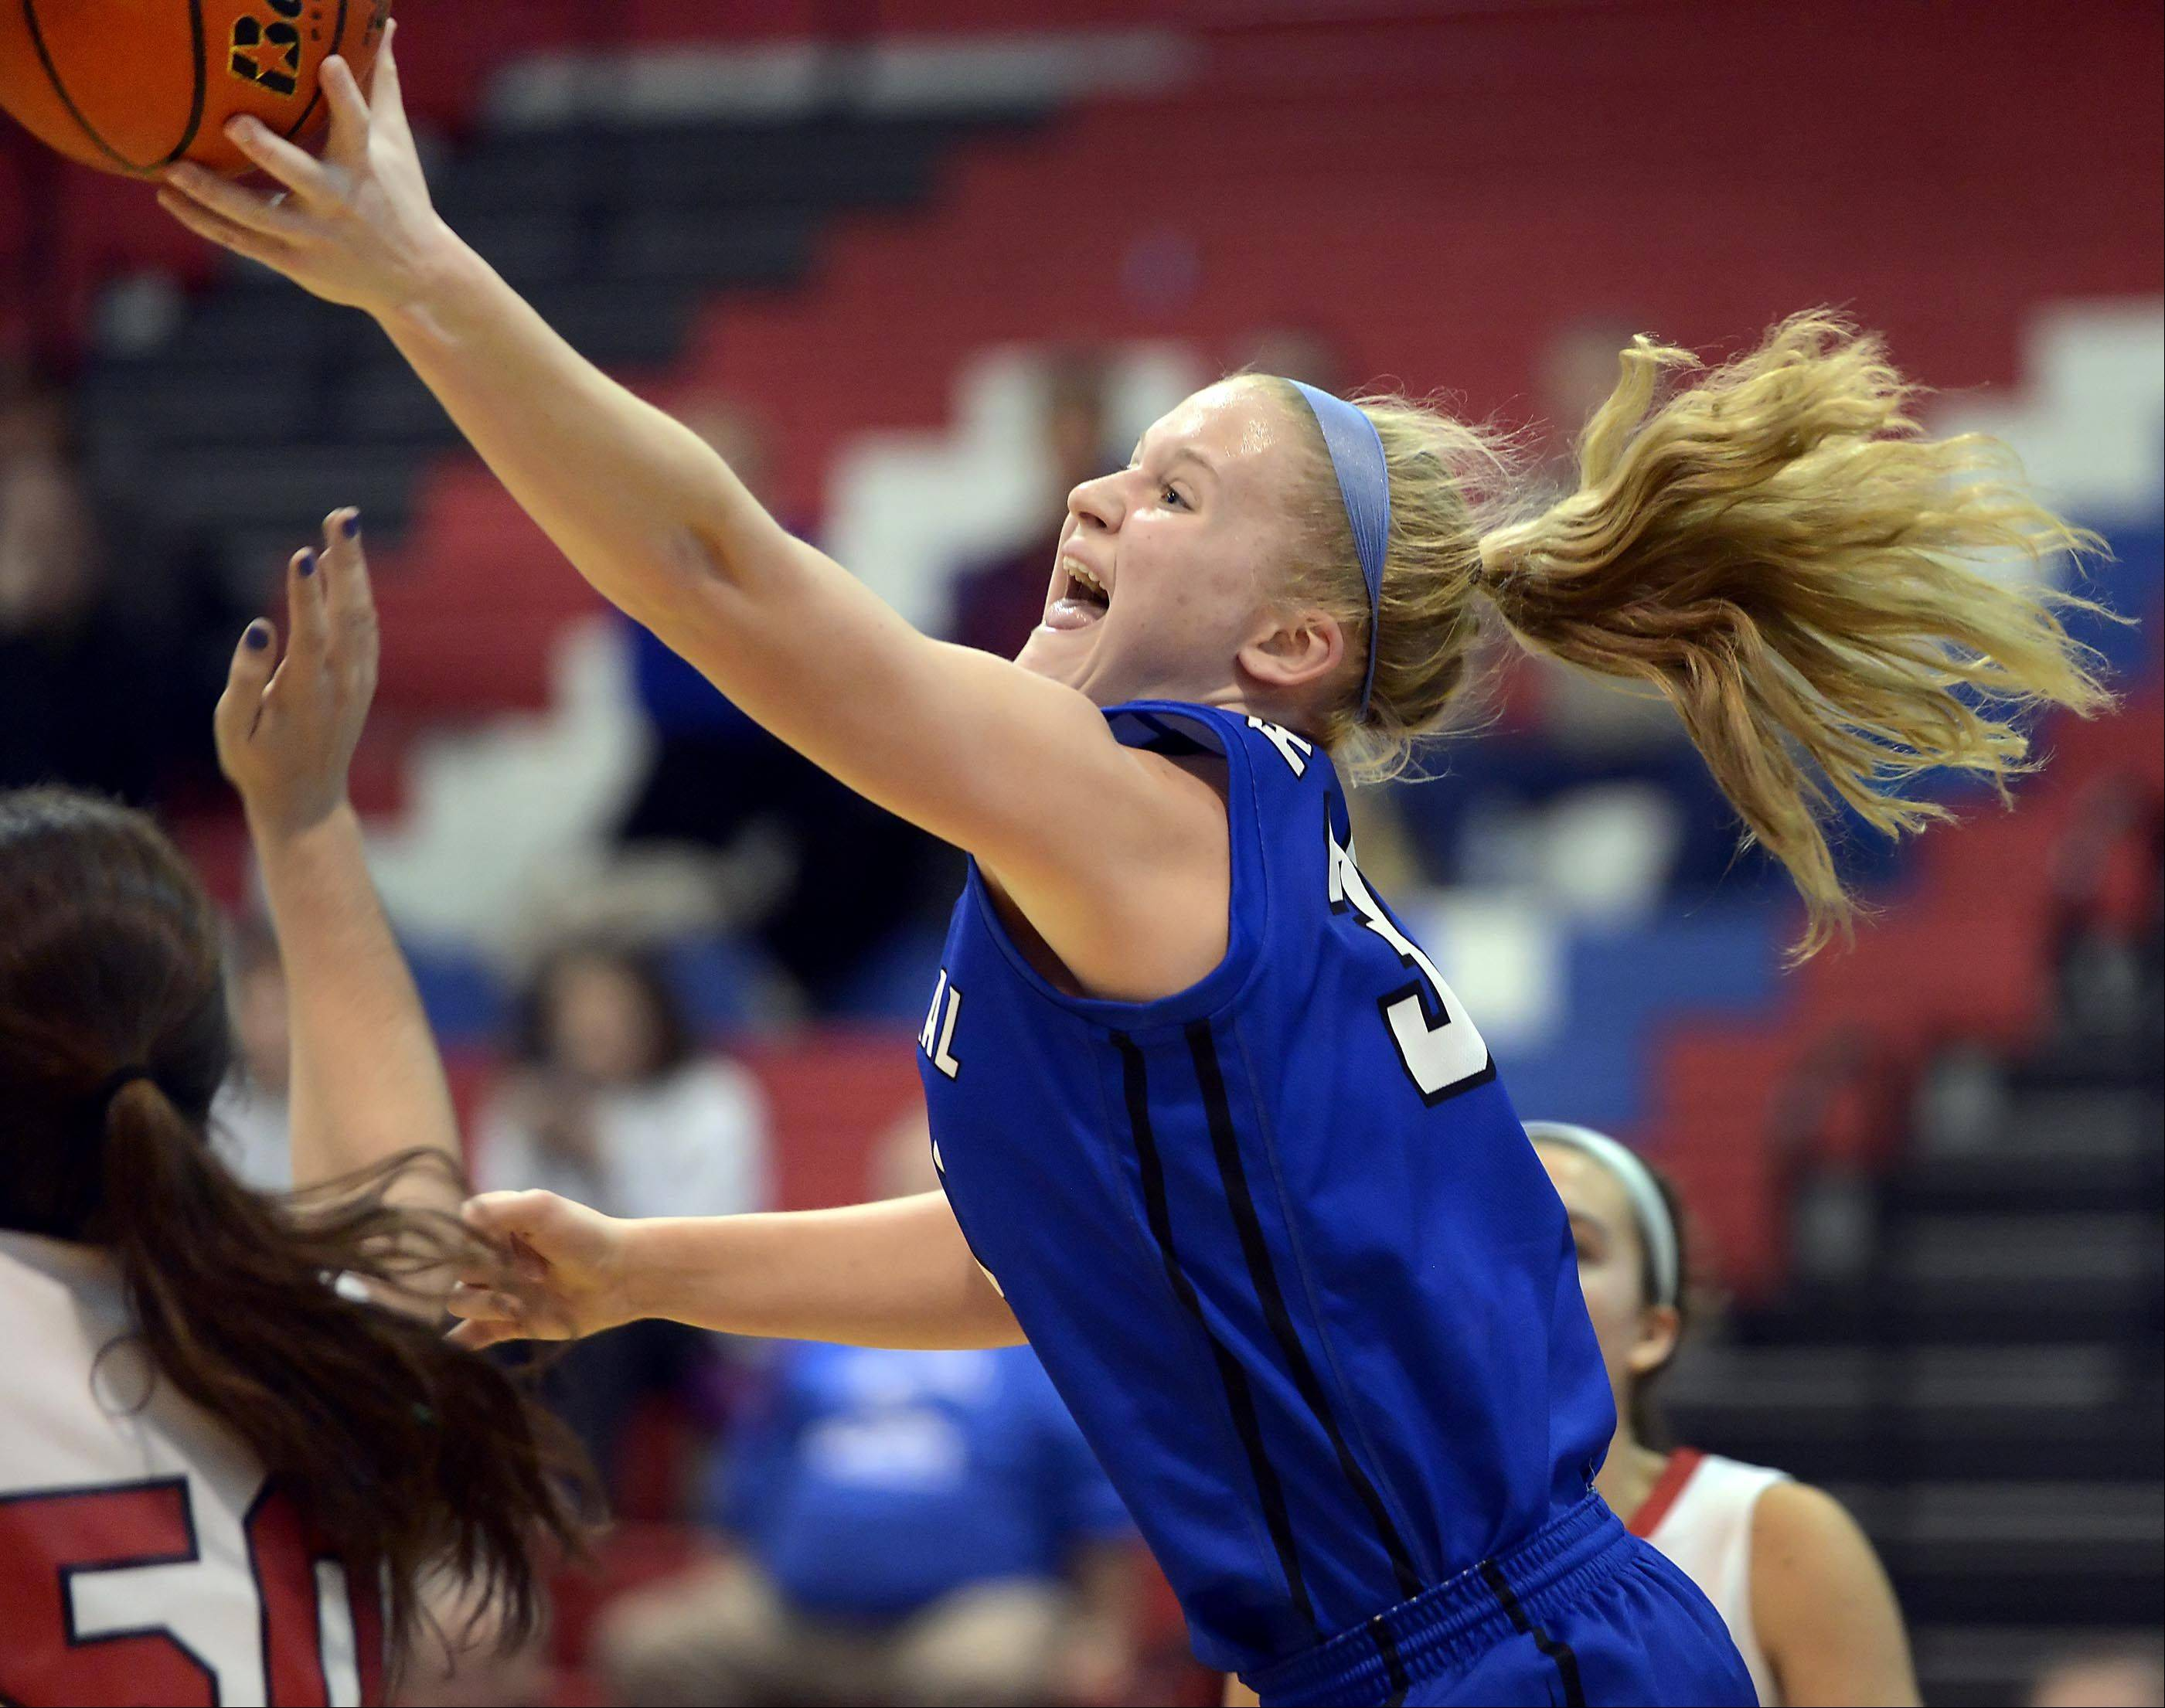 Burlington Central's Sam Pryor reaches for a rebound against Maine South Monday in the consolation game at the 31st Annual Charger Classic girls basketball tournament at Dundee-Crown High School in Carpentersville.